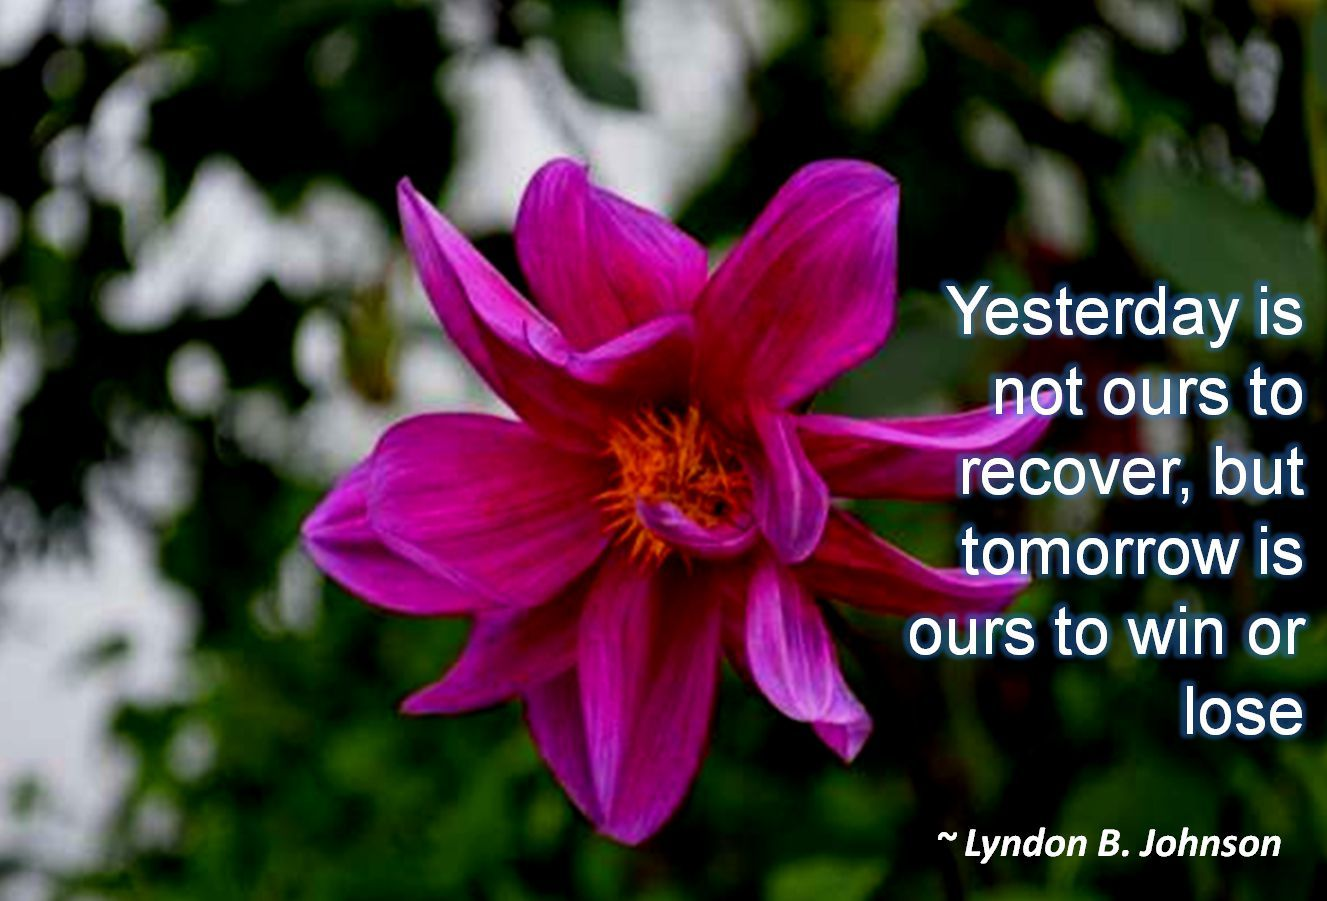 Lyndon B. Johnson- Yesterday is not ours to recover, but tomorrow is ours to win or lose